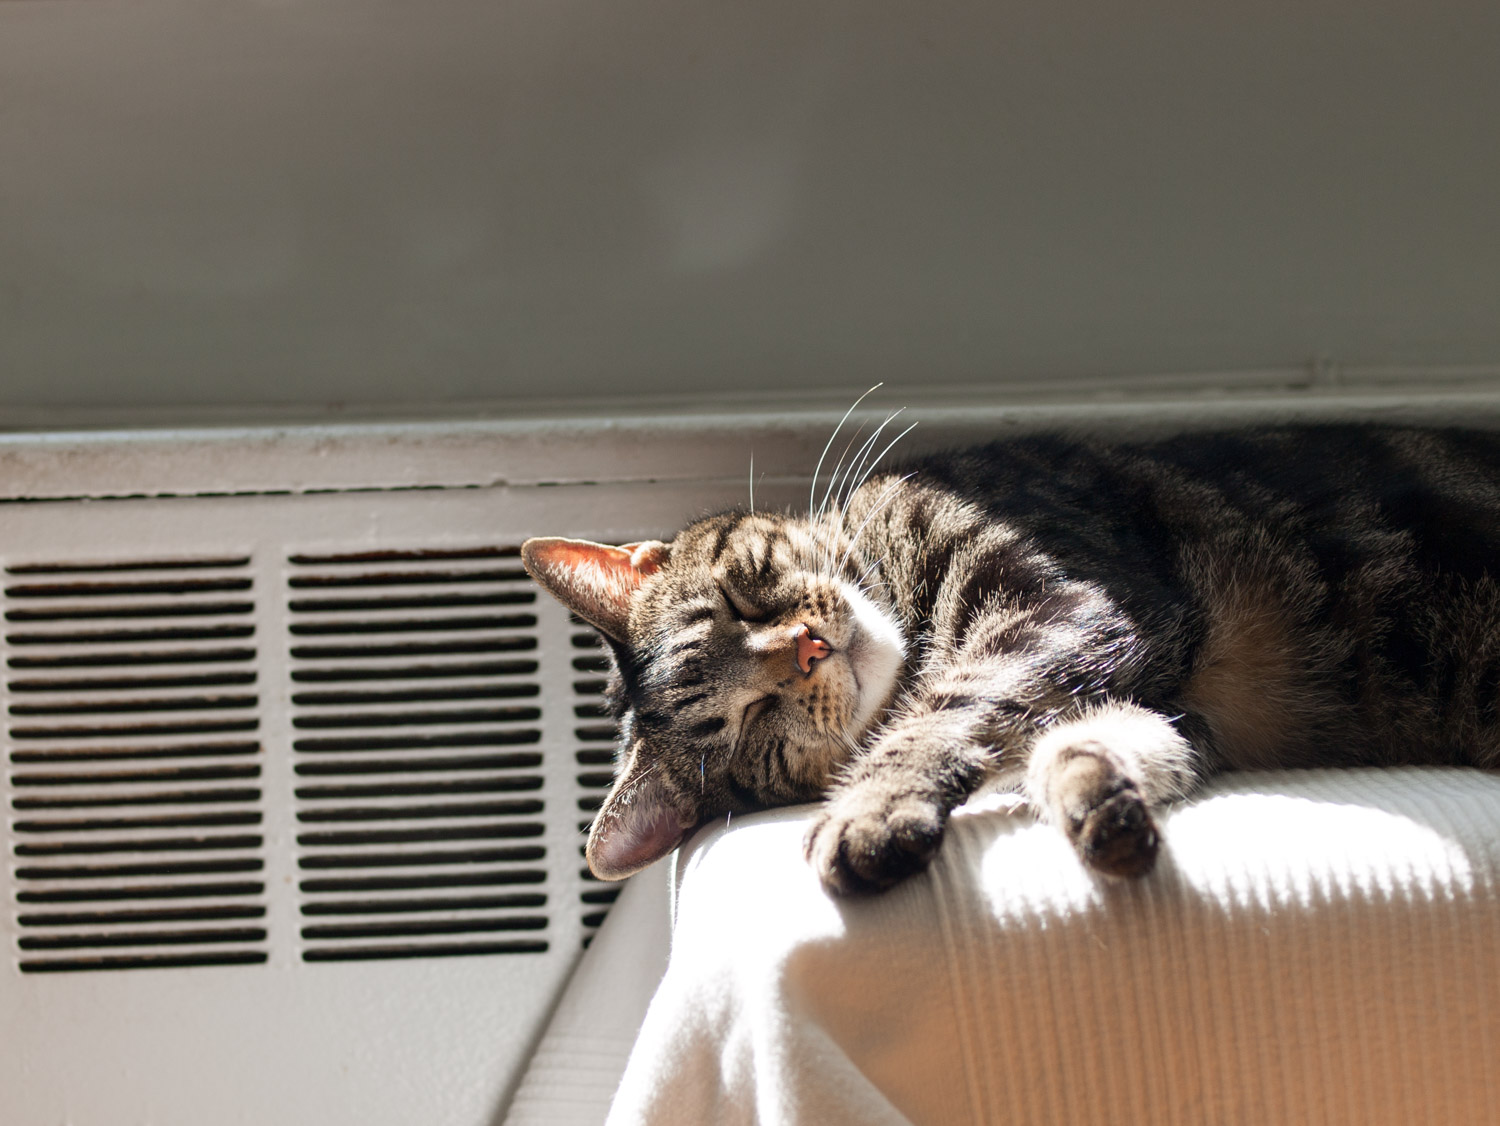 cat sleeping by radiator